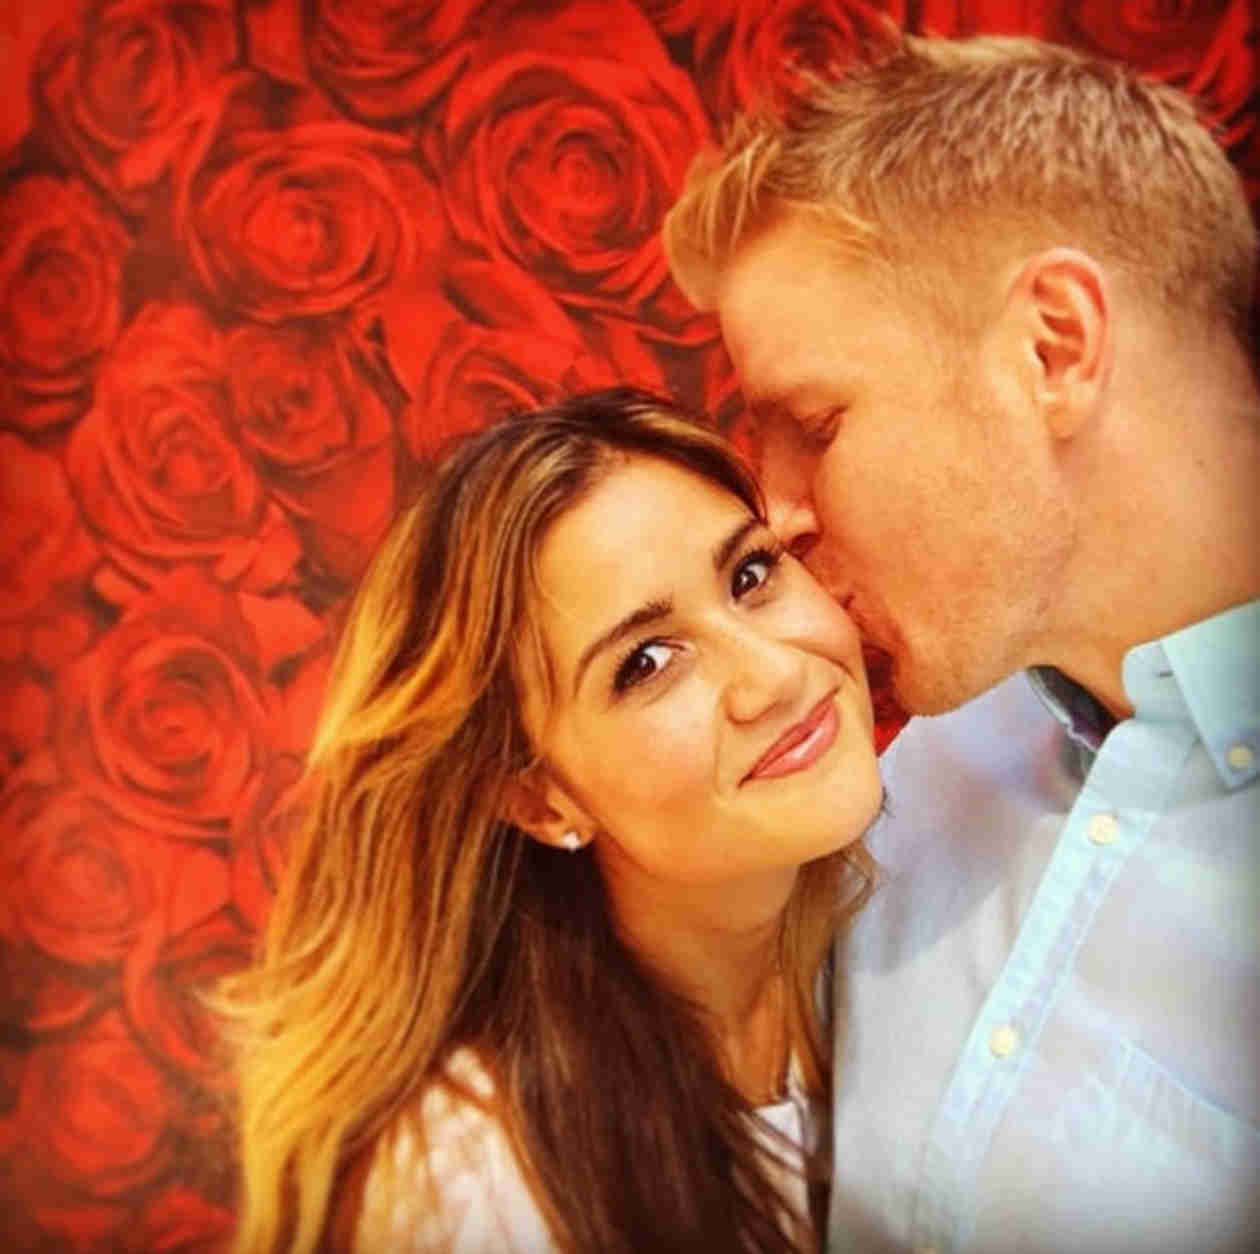 """Sean Lowe Gushes About Catherine: """"My Wife Is Hot and I'm in Love"""""""